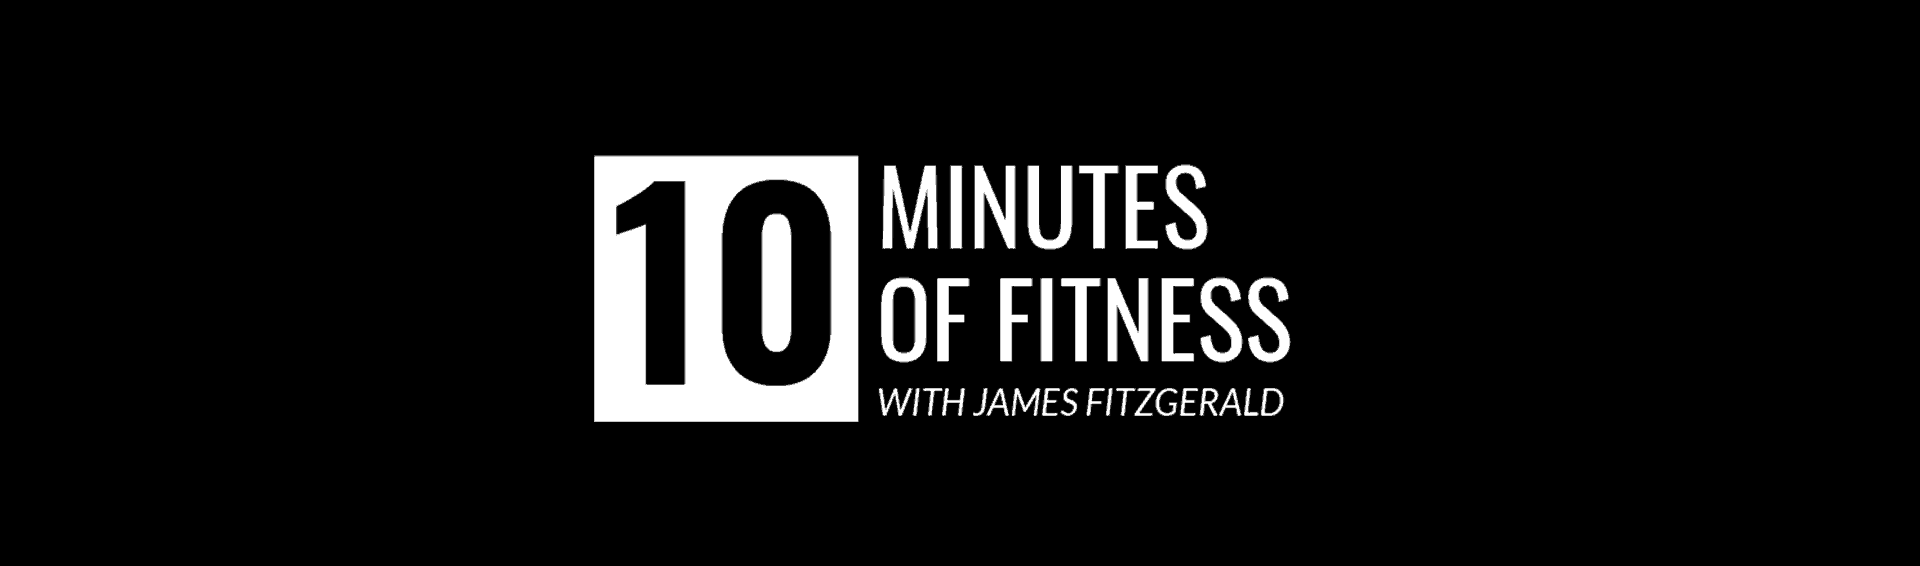 10 minutes of fitness with James FitzGerald, Lean Mass is misunderstood